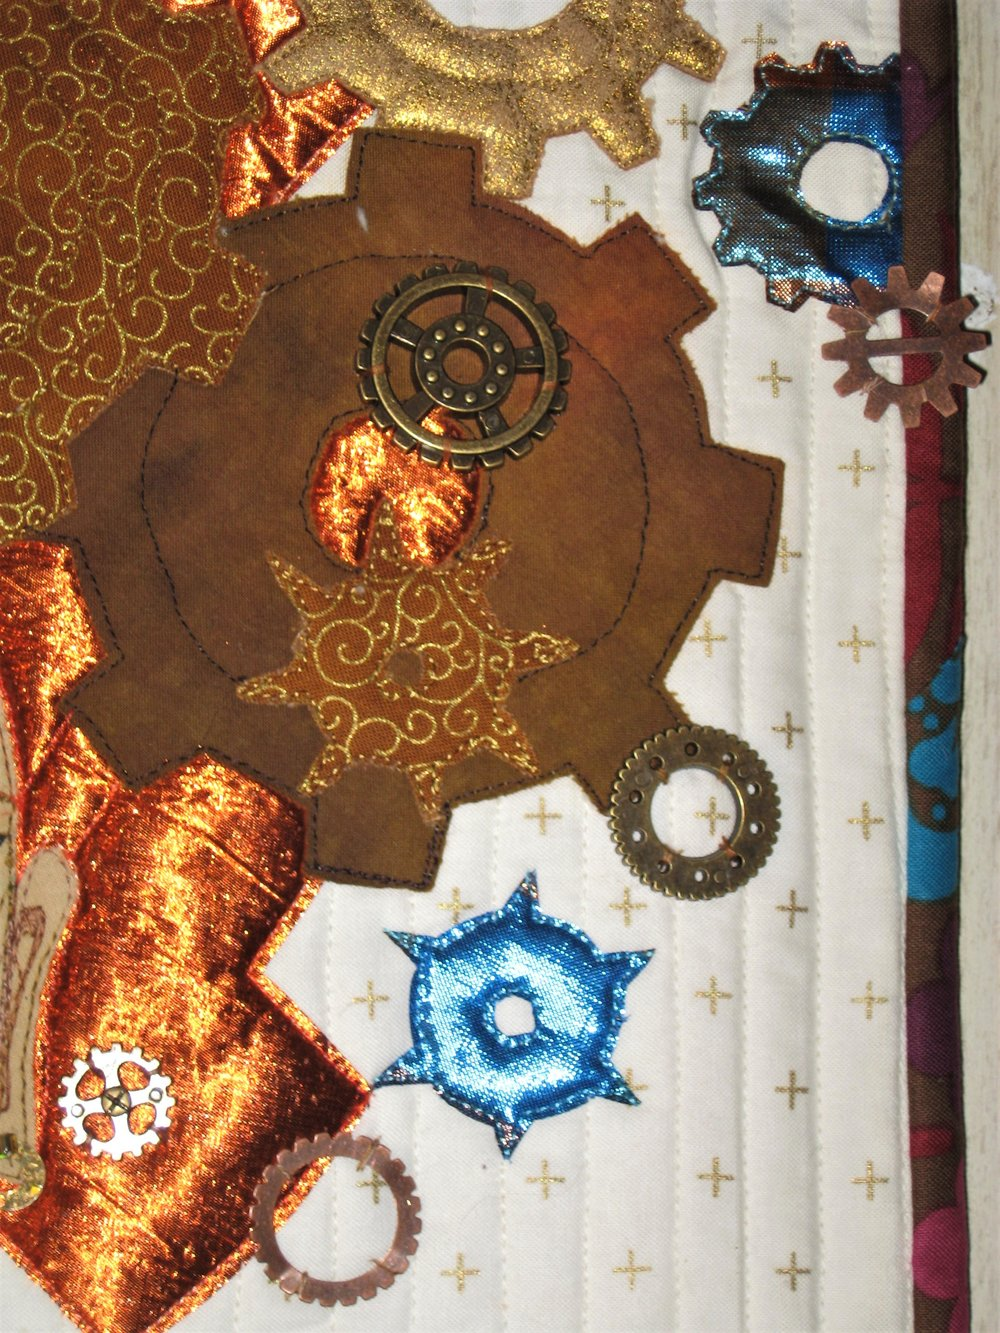 The background fabric was selected because it looked simple with a hint of gold and it also appeared old fashioned. I used two lames, a leather-like lame, gold embossed fabrics and rusty looking brown for the gear fabrics. I purchases metal gears from two different stores and hand sewed them sporadically to the quilt.